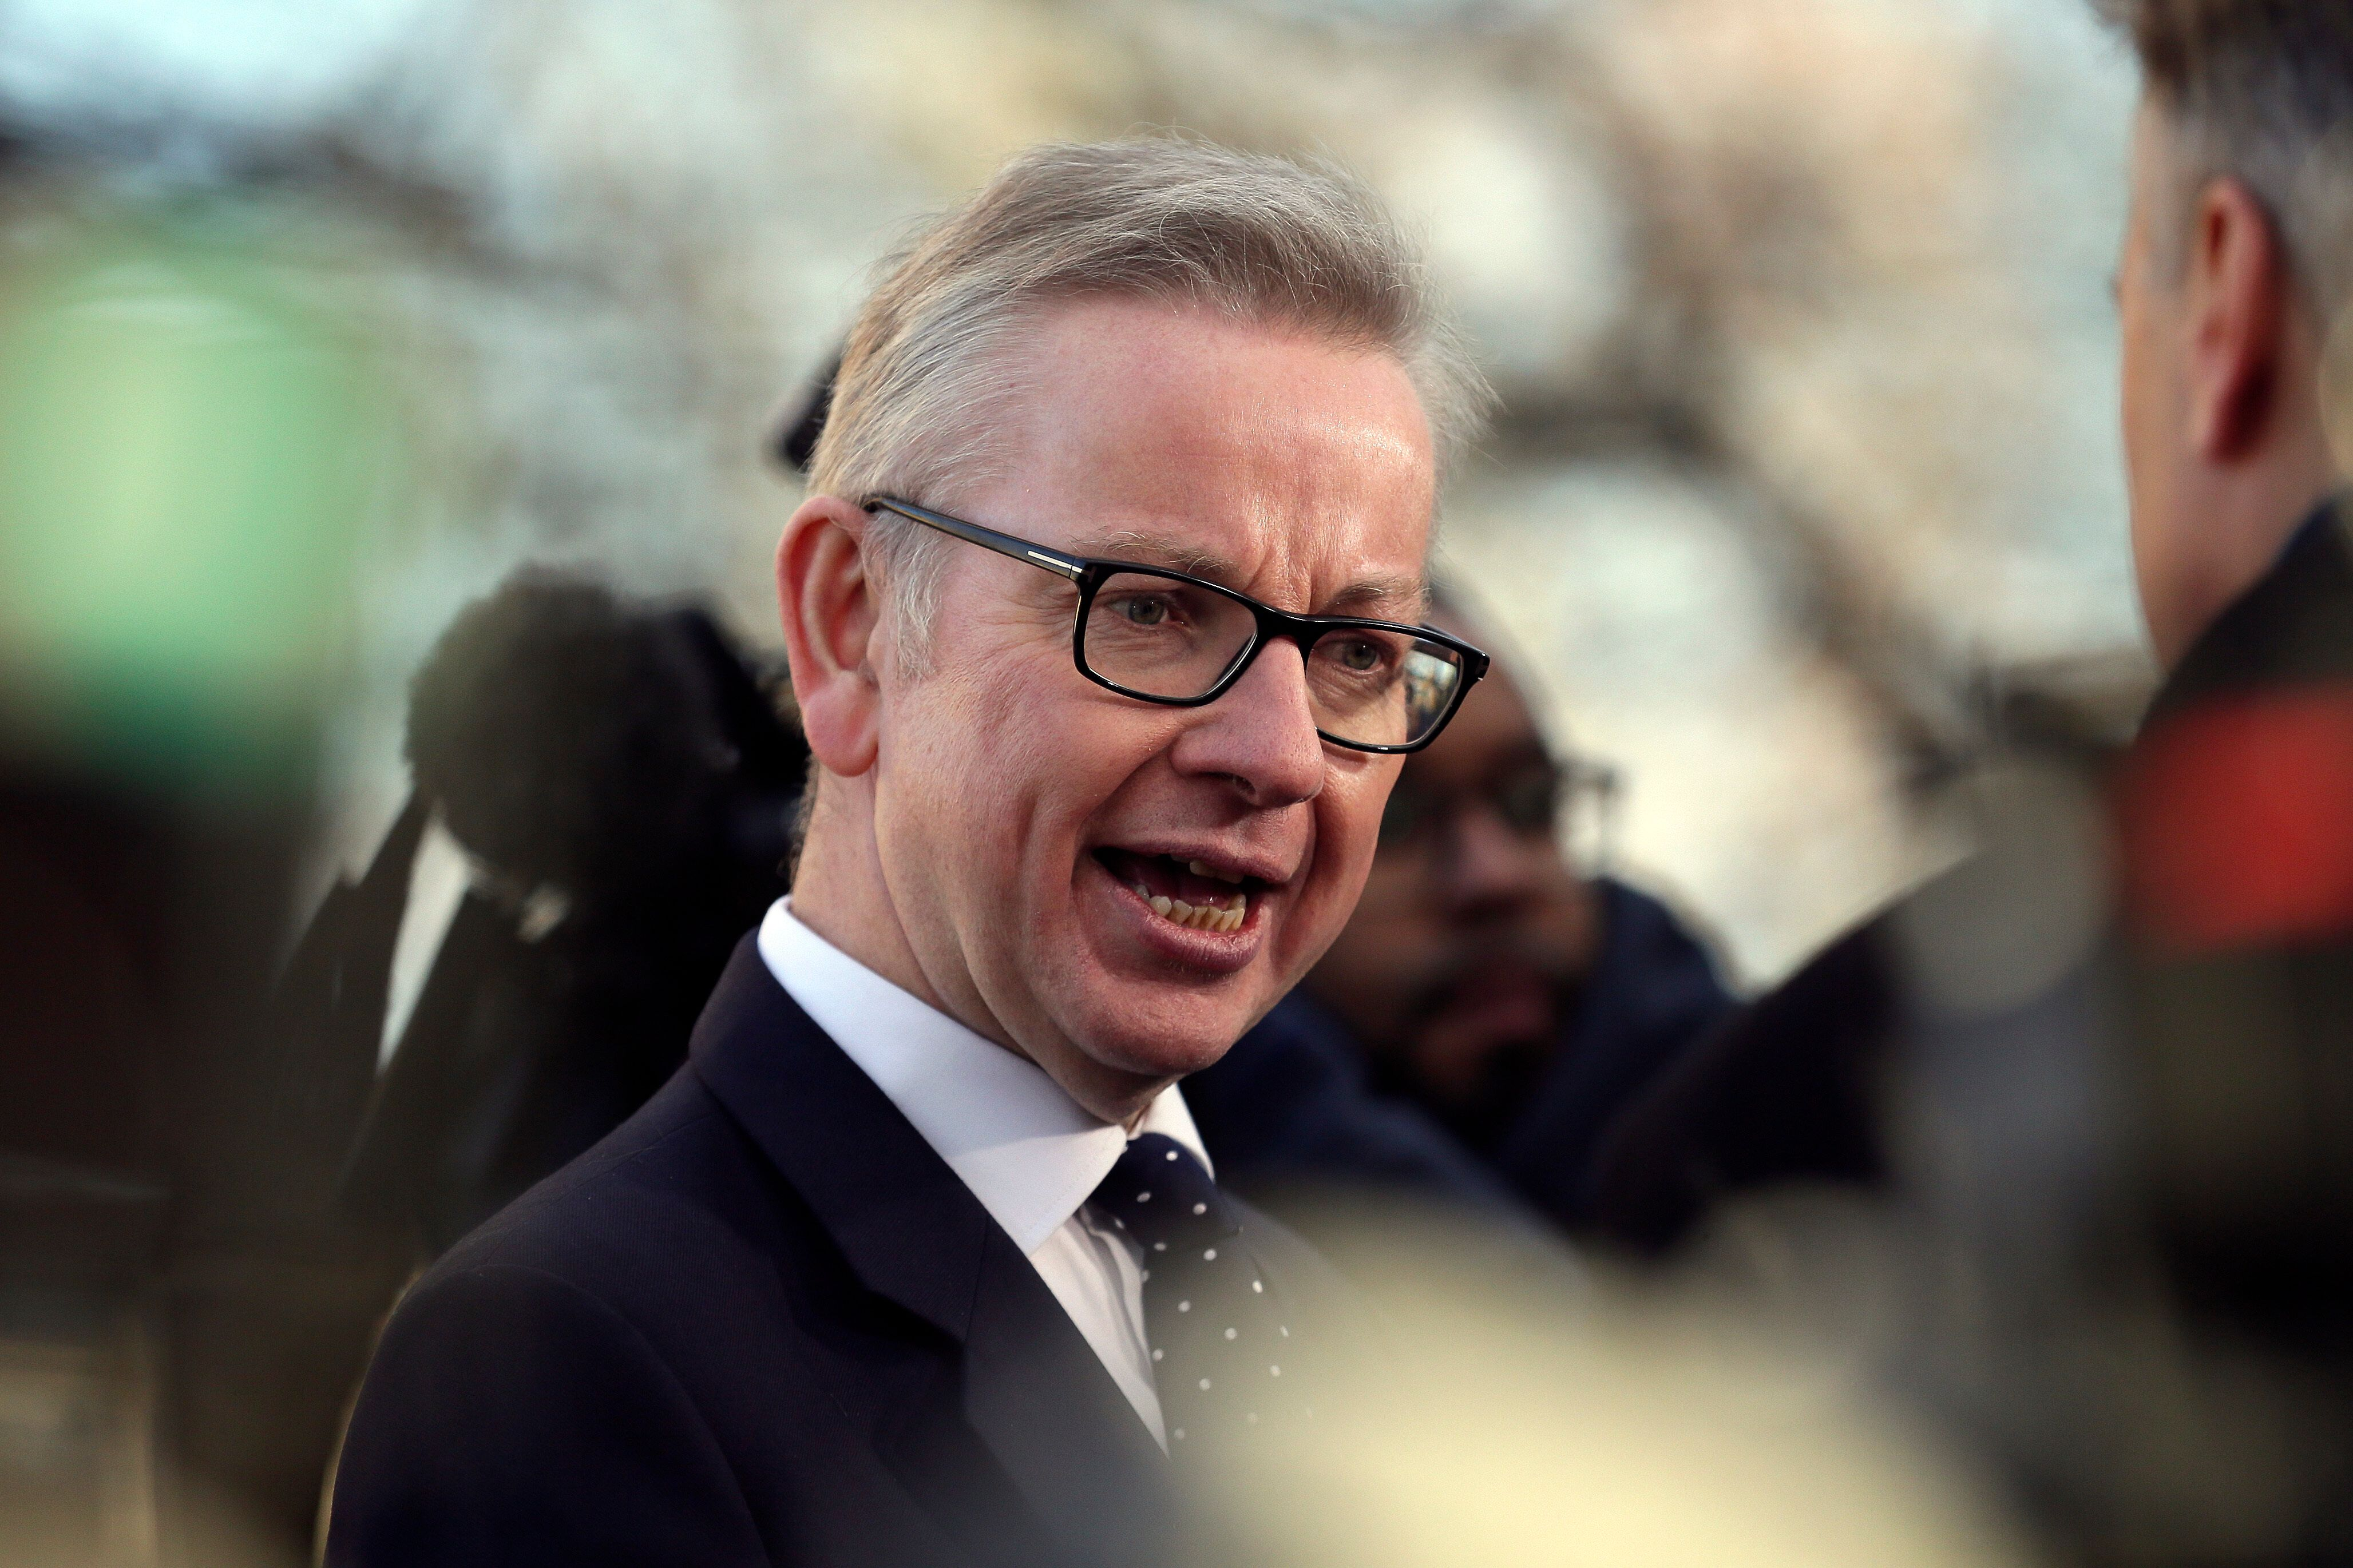 Britain's environment secretary Michael Gove speaks to the media outside the Houses of Parliament, in London, Wednesday December 12, 2018. British Conservative lawmakers forced a no-confidence vote in Prime Minister Theresa May for Wednesday, throwing U.K. politics deeper into crisis and Brexit further into doubt. (AP Photo/Tim Ireland)